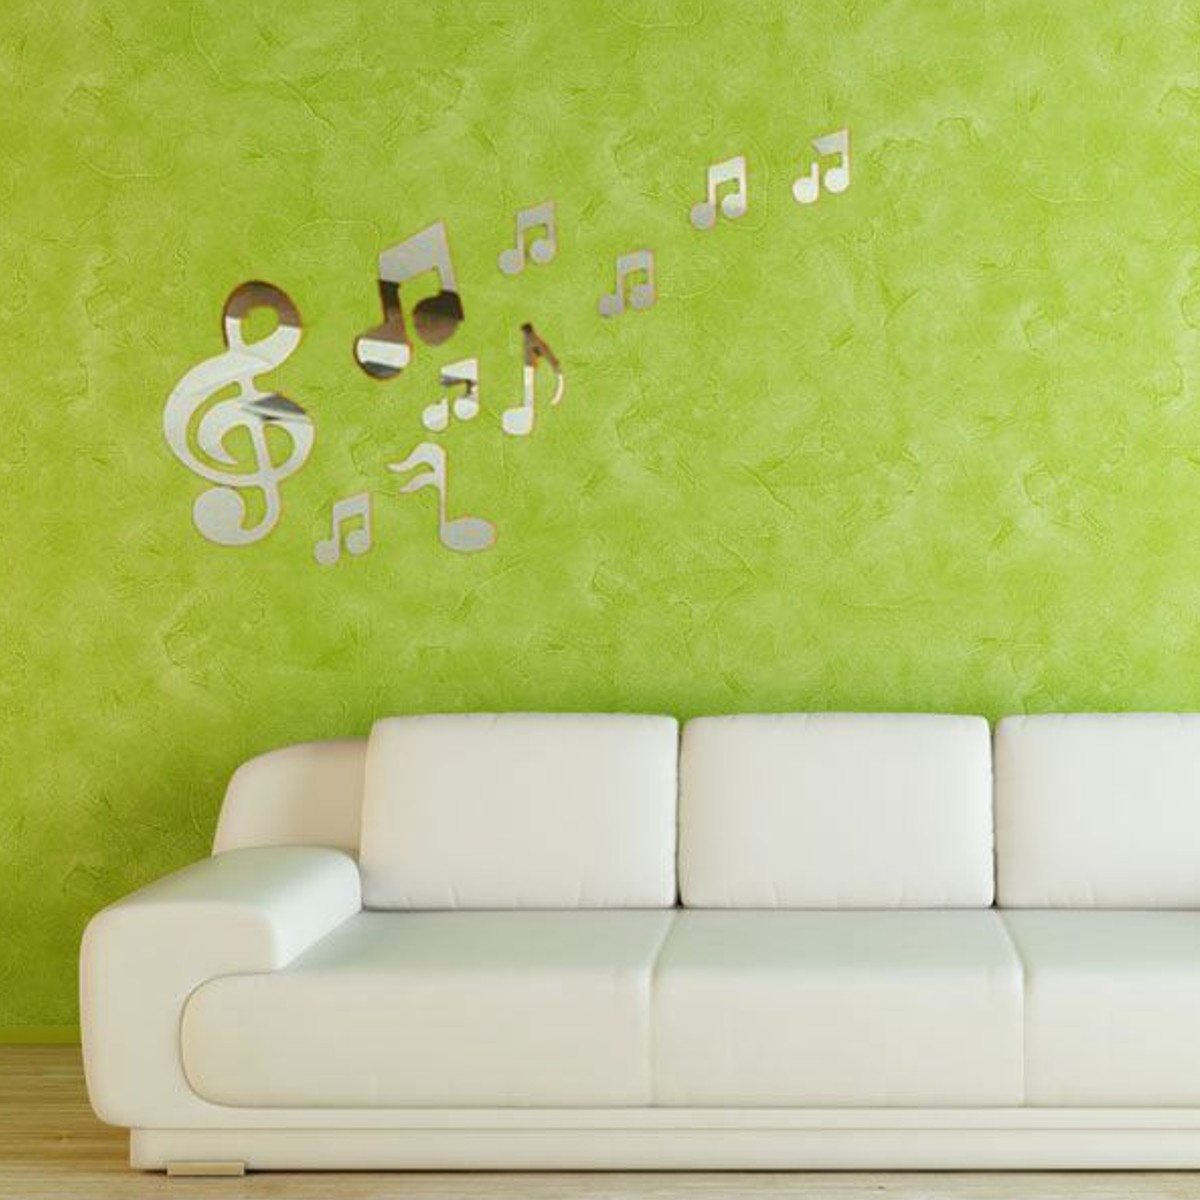 popular musical note wall stickers buy cheap musical note wall removable music note mirror wall sticker vinyl decal mural home decoration china mainland